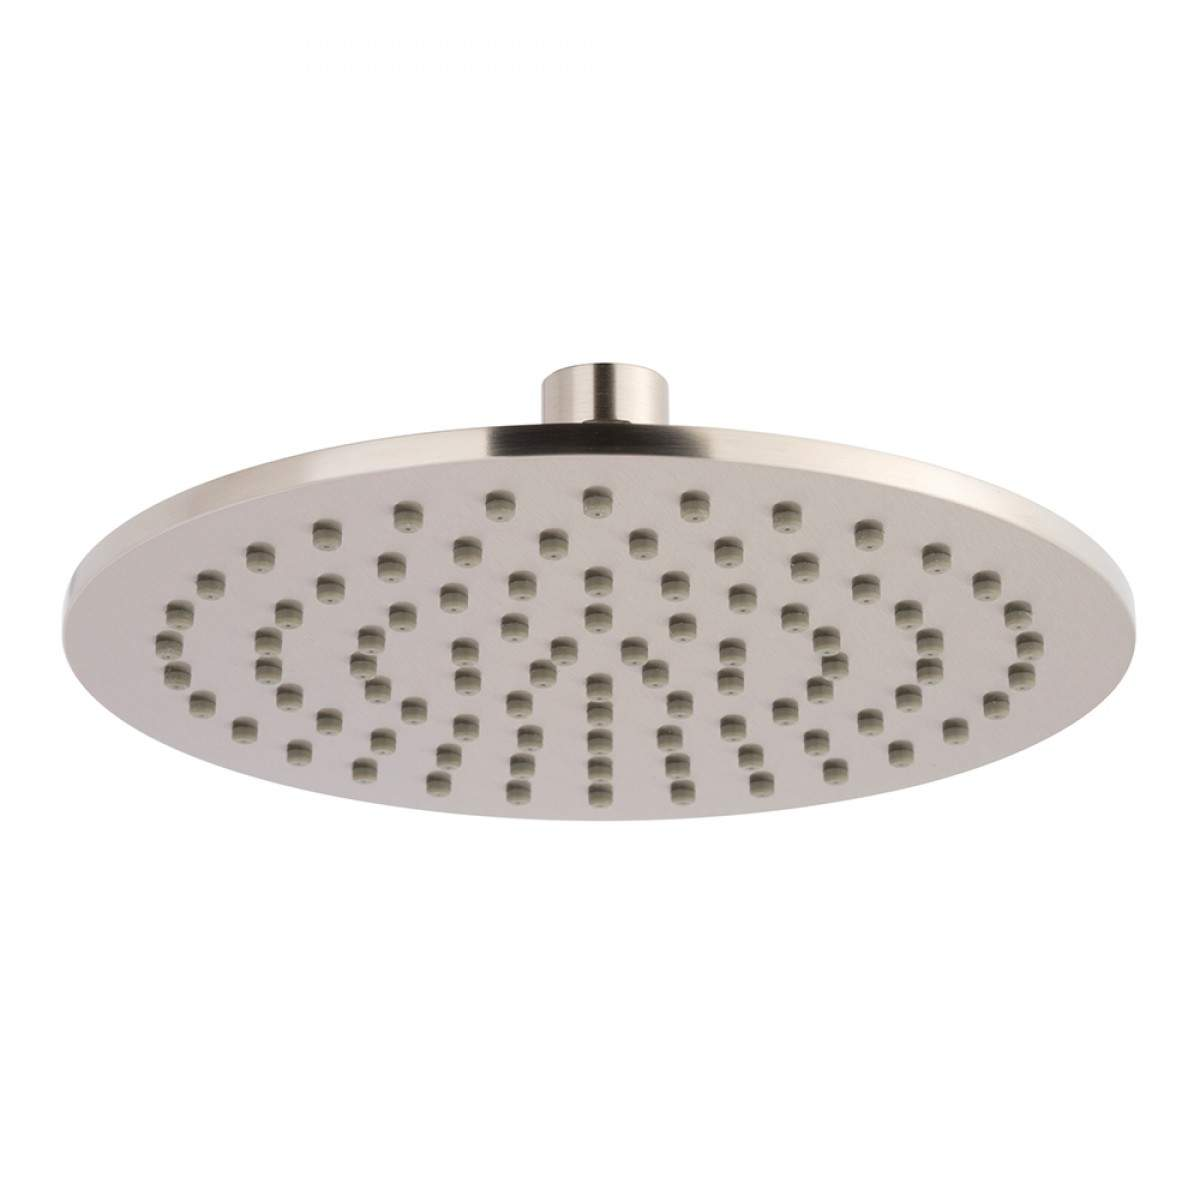 Burnished Brass gold shower head set 200 mm DIA round wall ceiling arm handle up